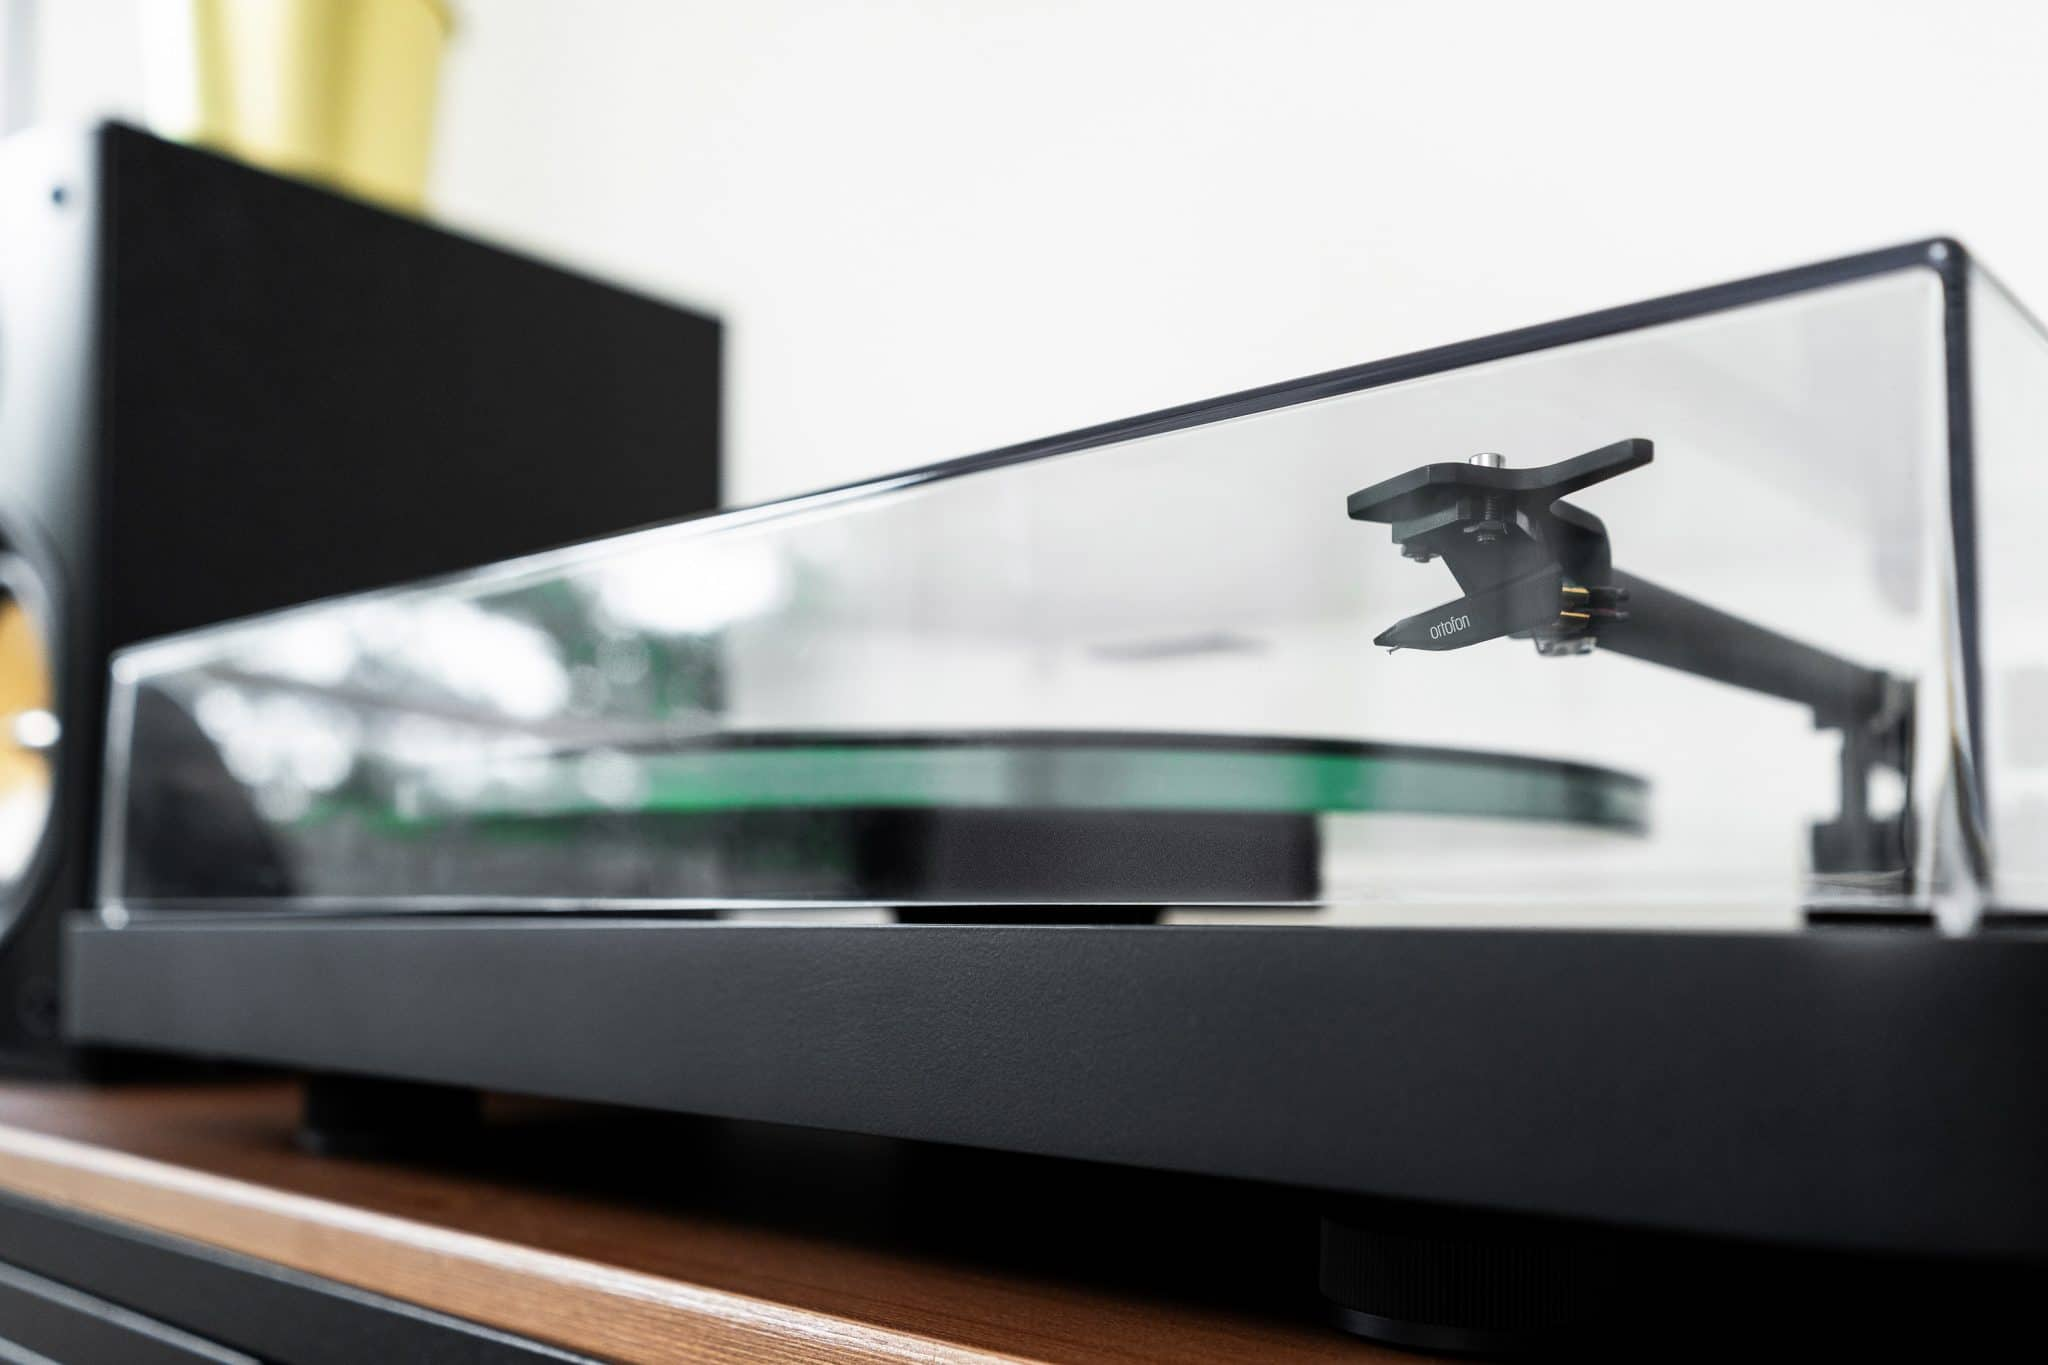 C558 Turntable From NAD: Pick'n'Mix